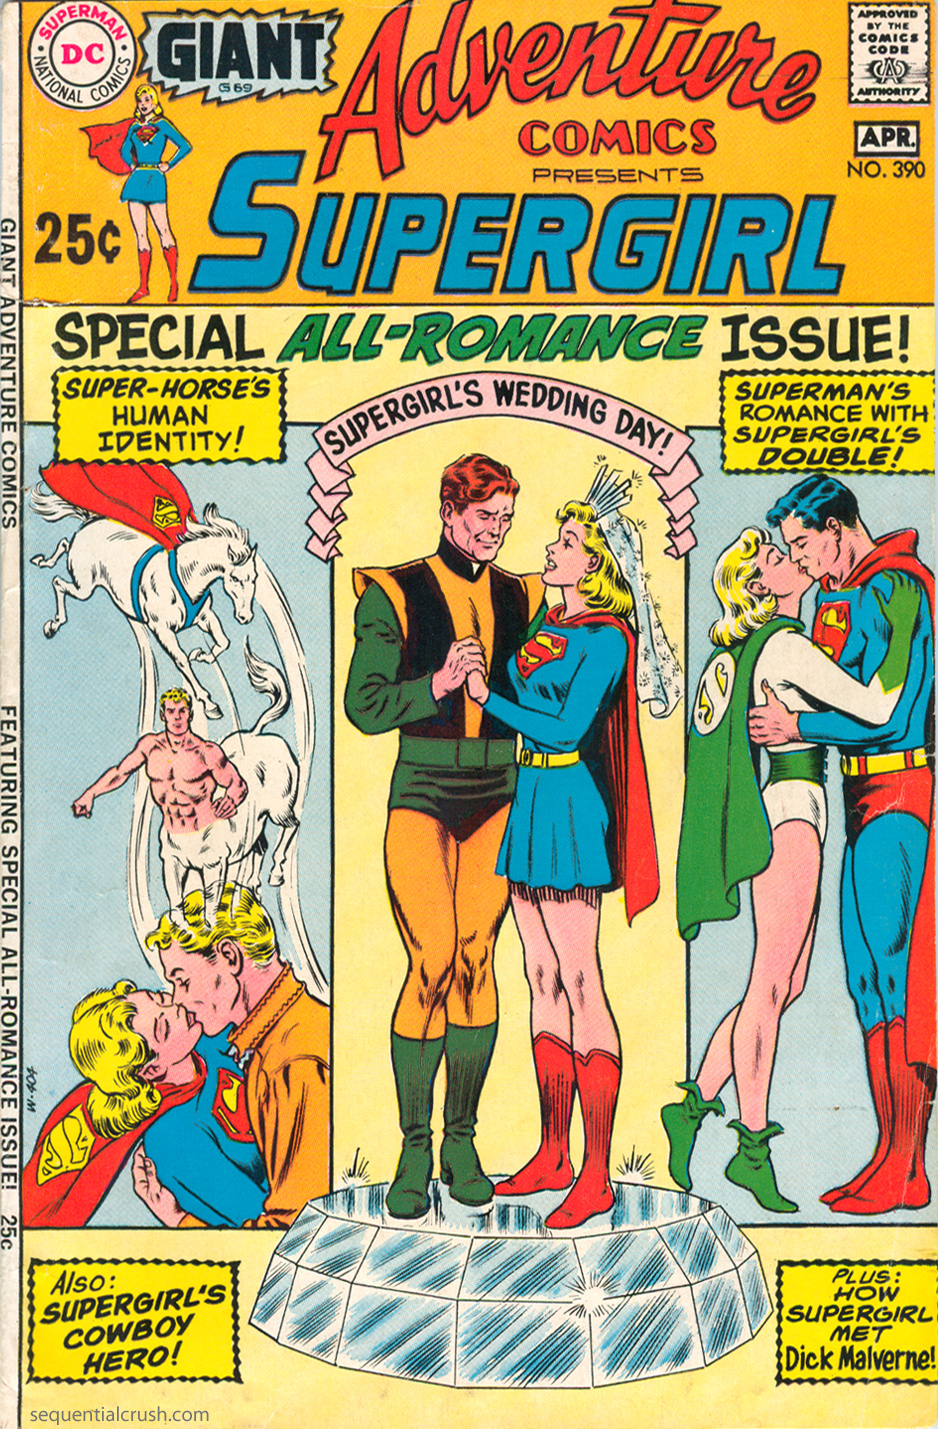 Adventure Comics  #390 (March/April 1970) Pencils: Curt Swan, Inks: Murphy Anderson